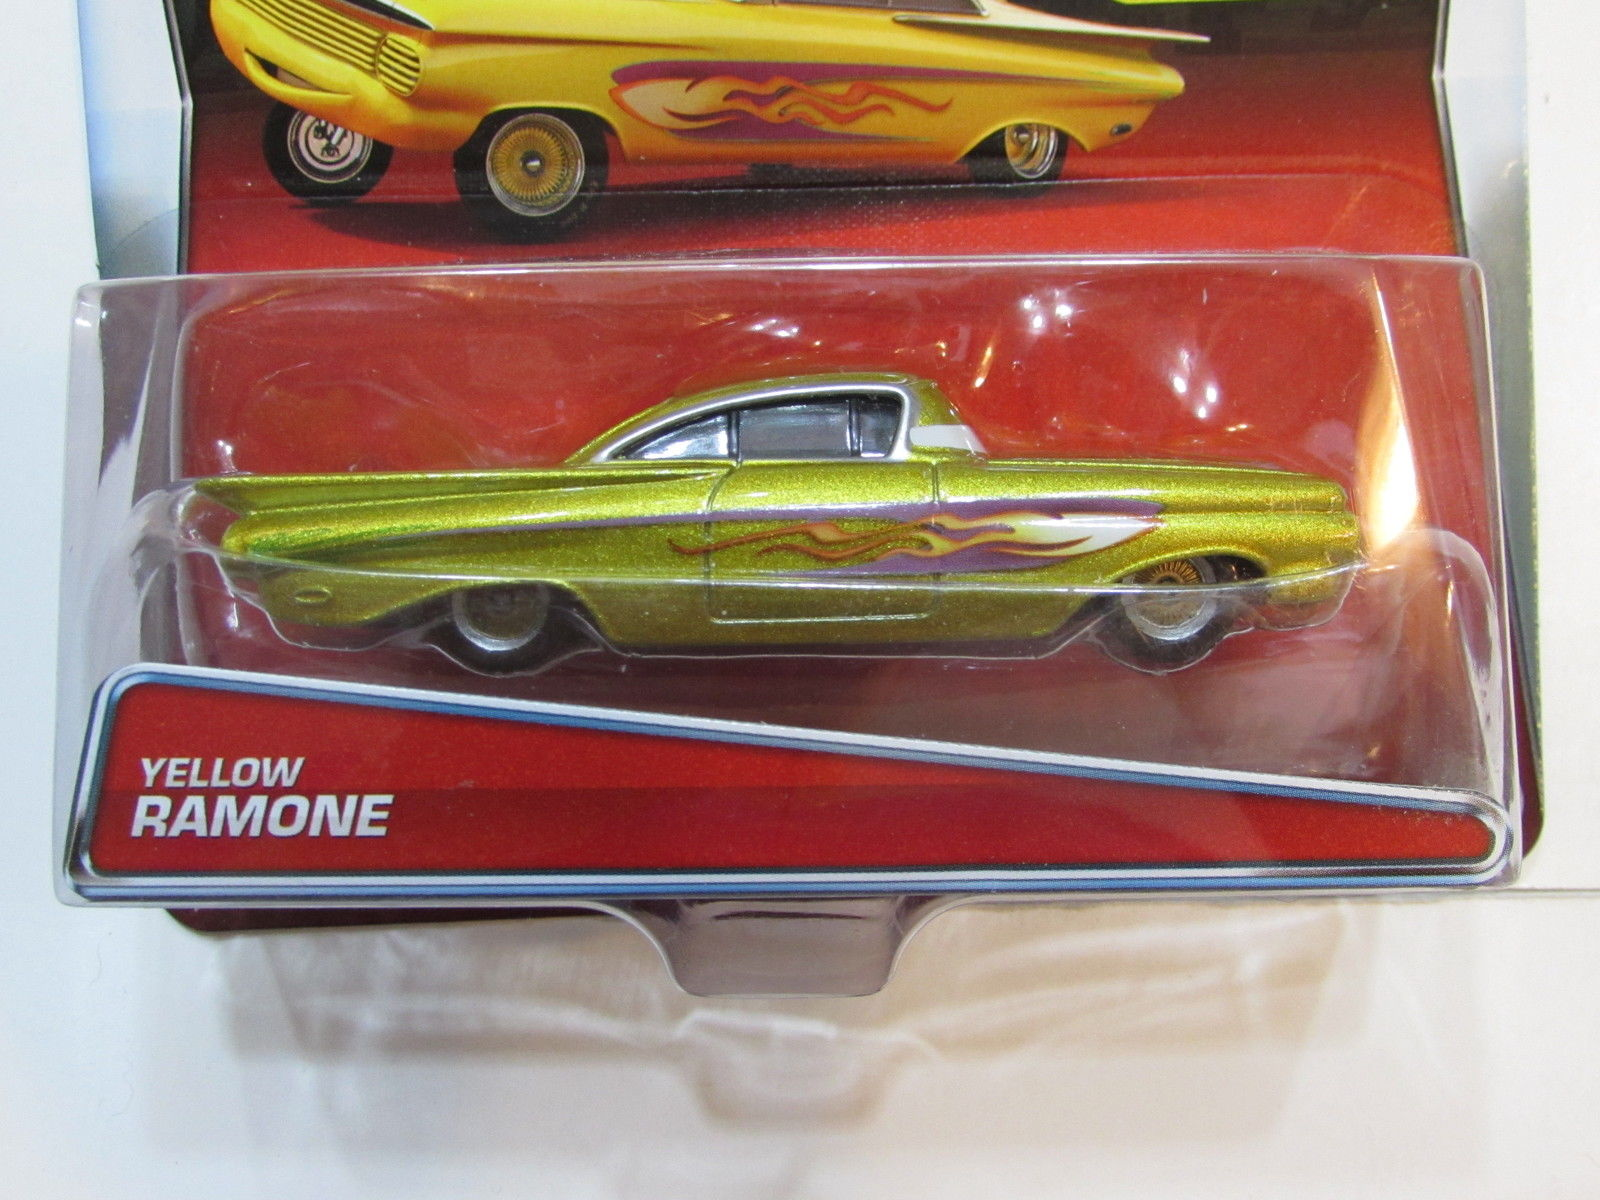 DISNEY PIXAR CARS RADIATOR SPRINGS YELLOW RAMONE